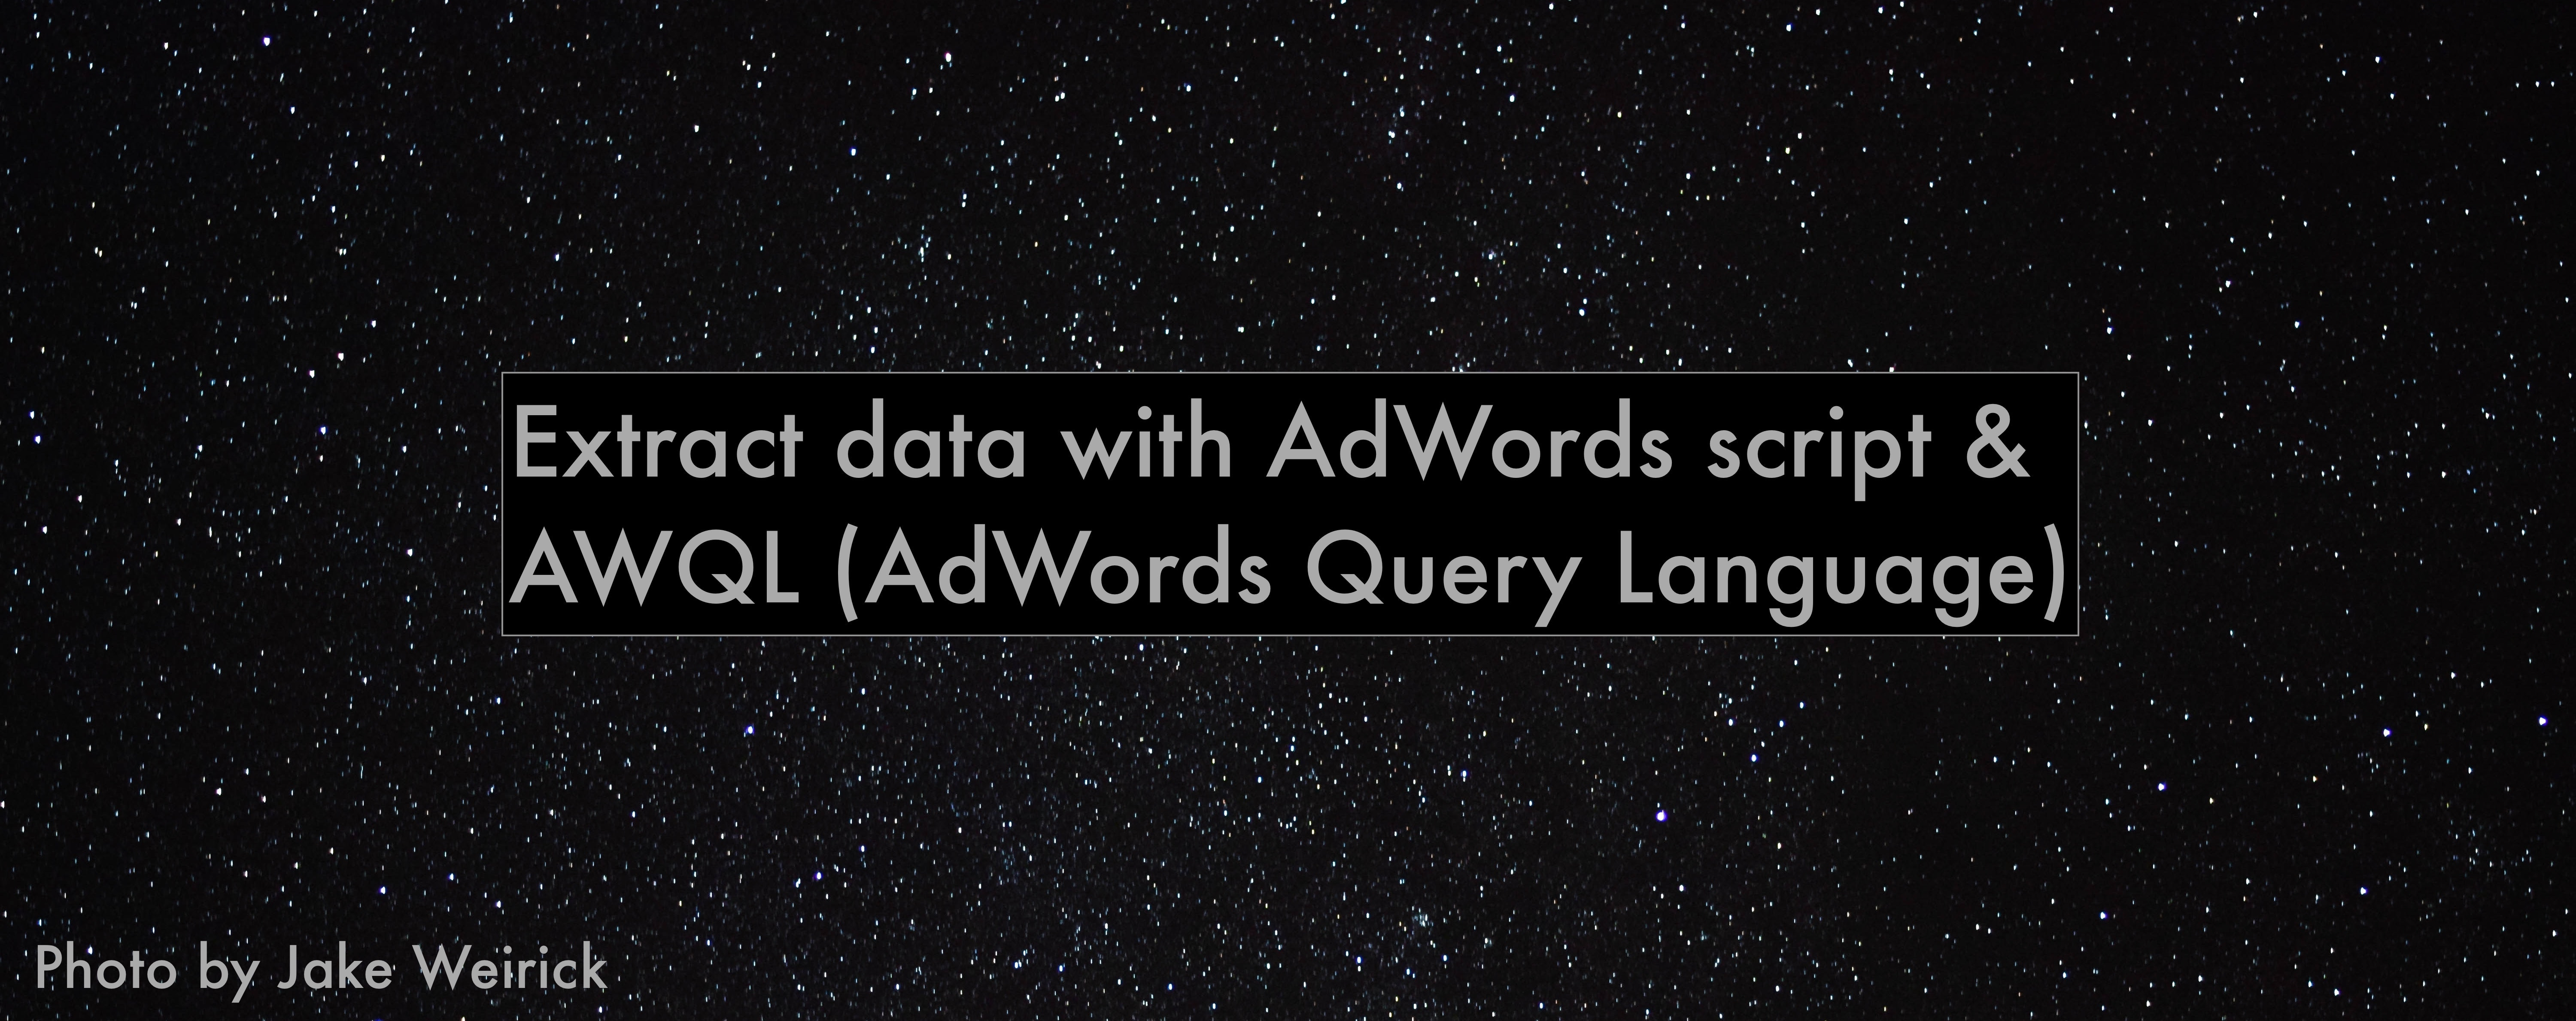 Extract data with AdWords script and AWQL (AdWords Query Language)